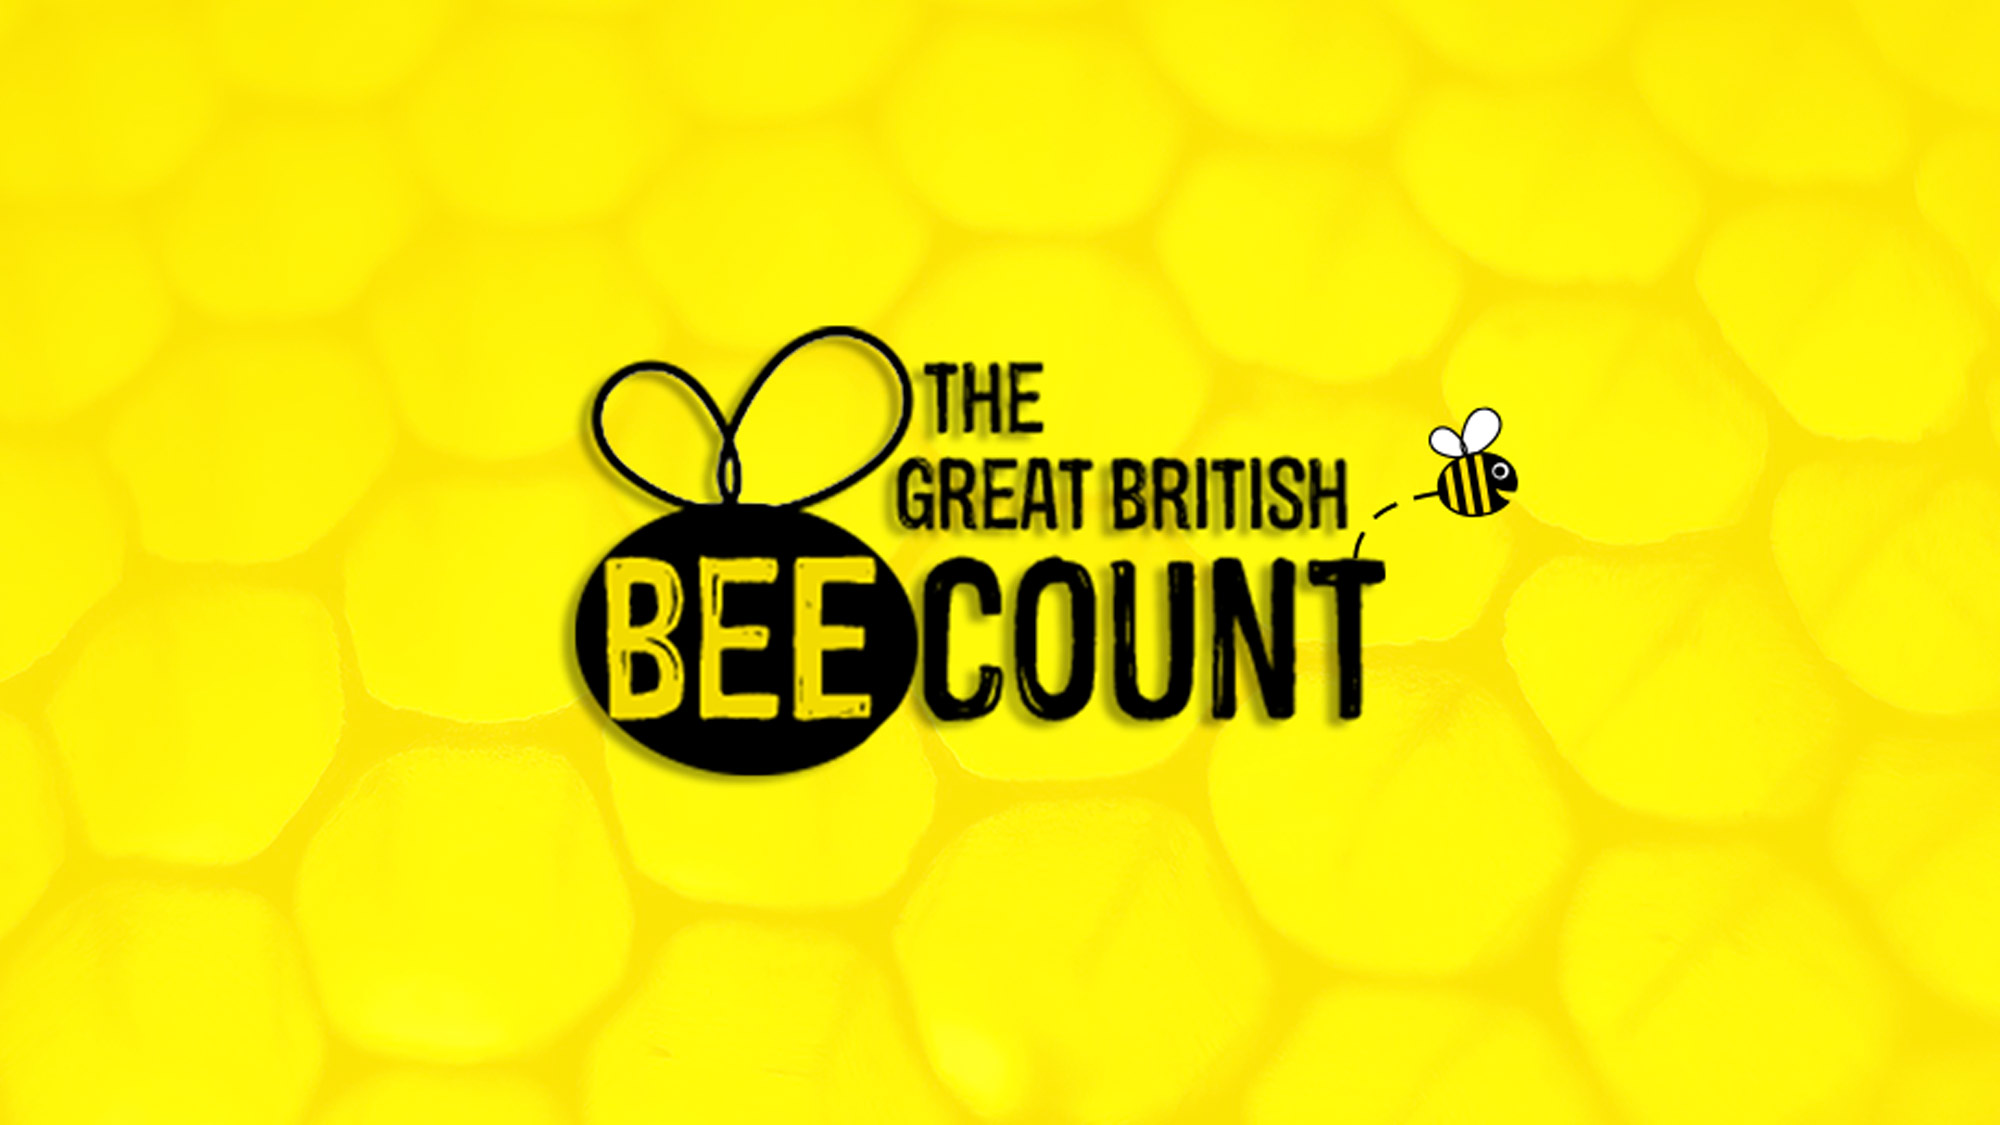 British bee count i love meet and greet the i love meet and greet airport parking teams at gatwick and stansted are are supporting the great british bee count organised friends of the earth kristyandbryce Choice Image